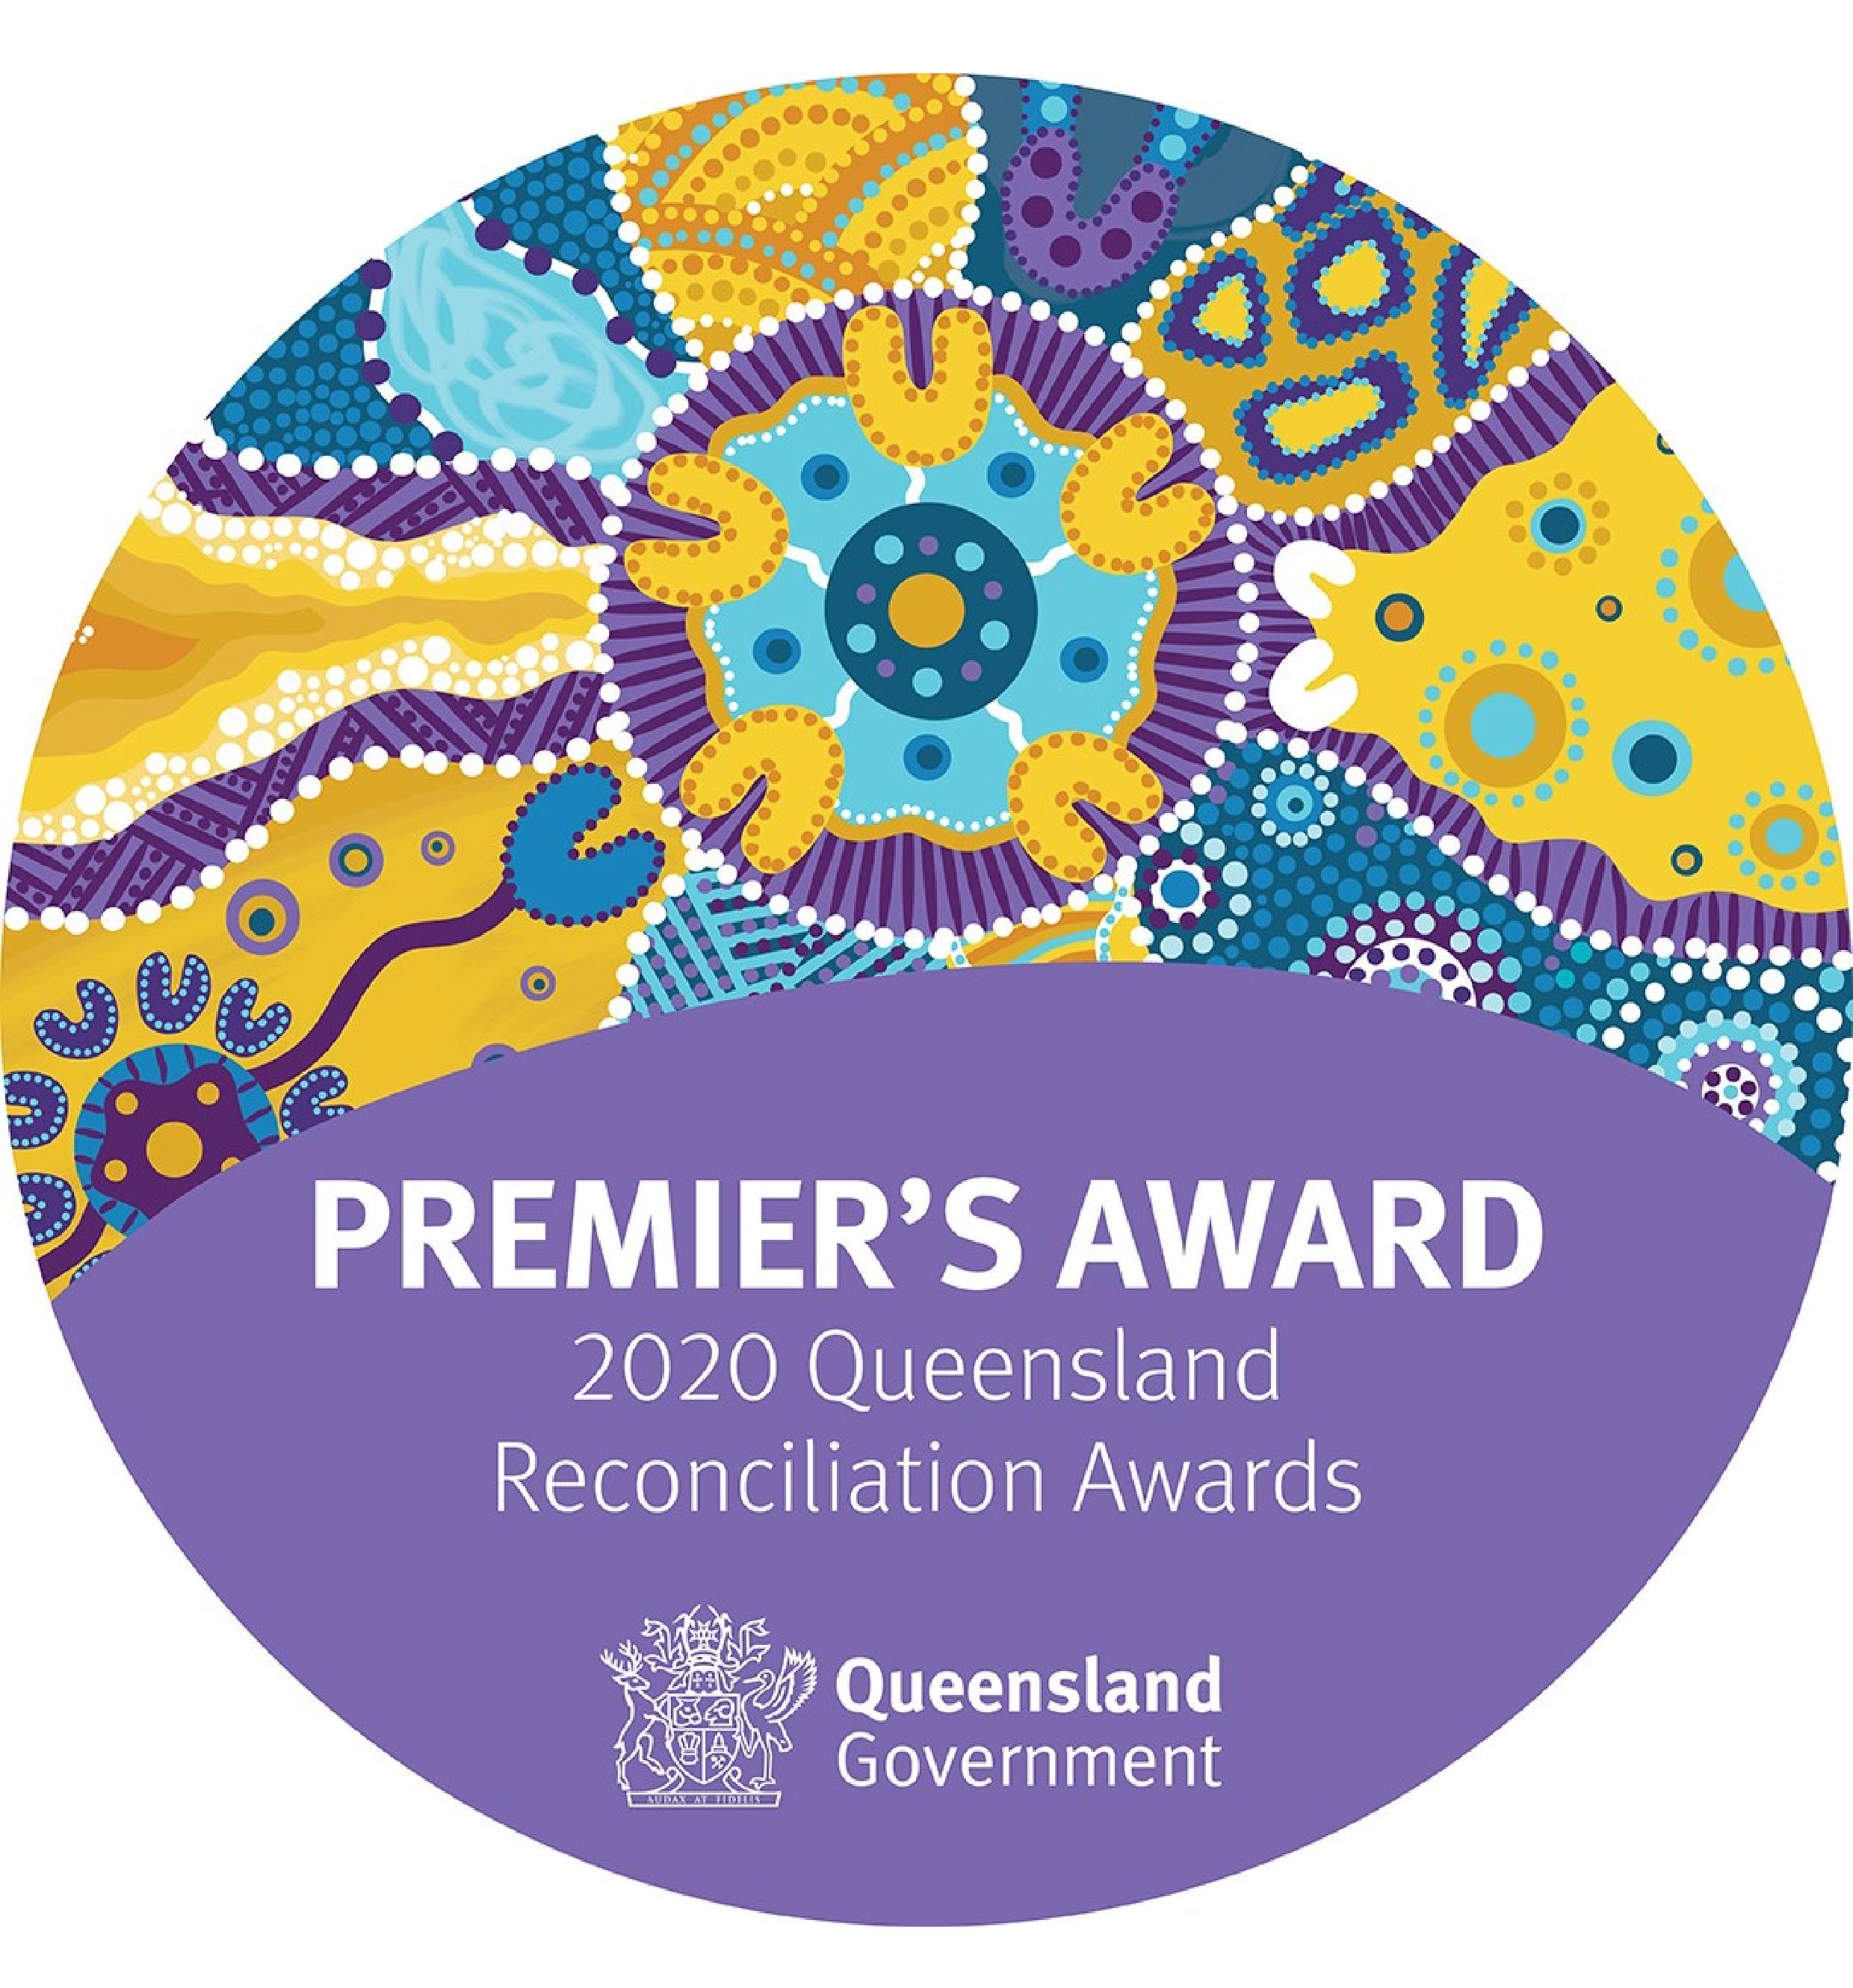 Premier's Award - Queensland Reconciliation Awards 2020